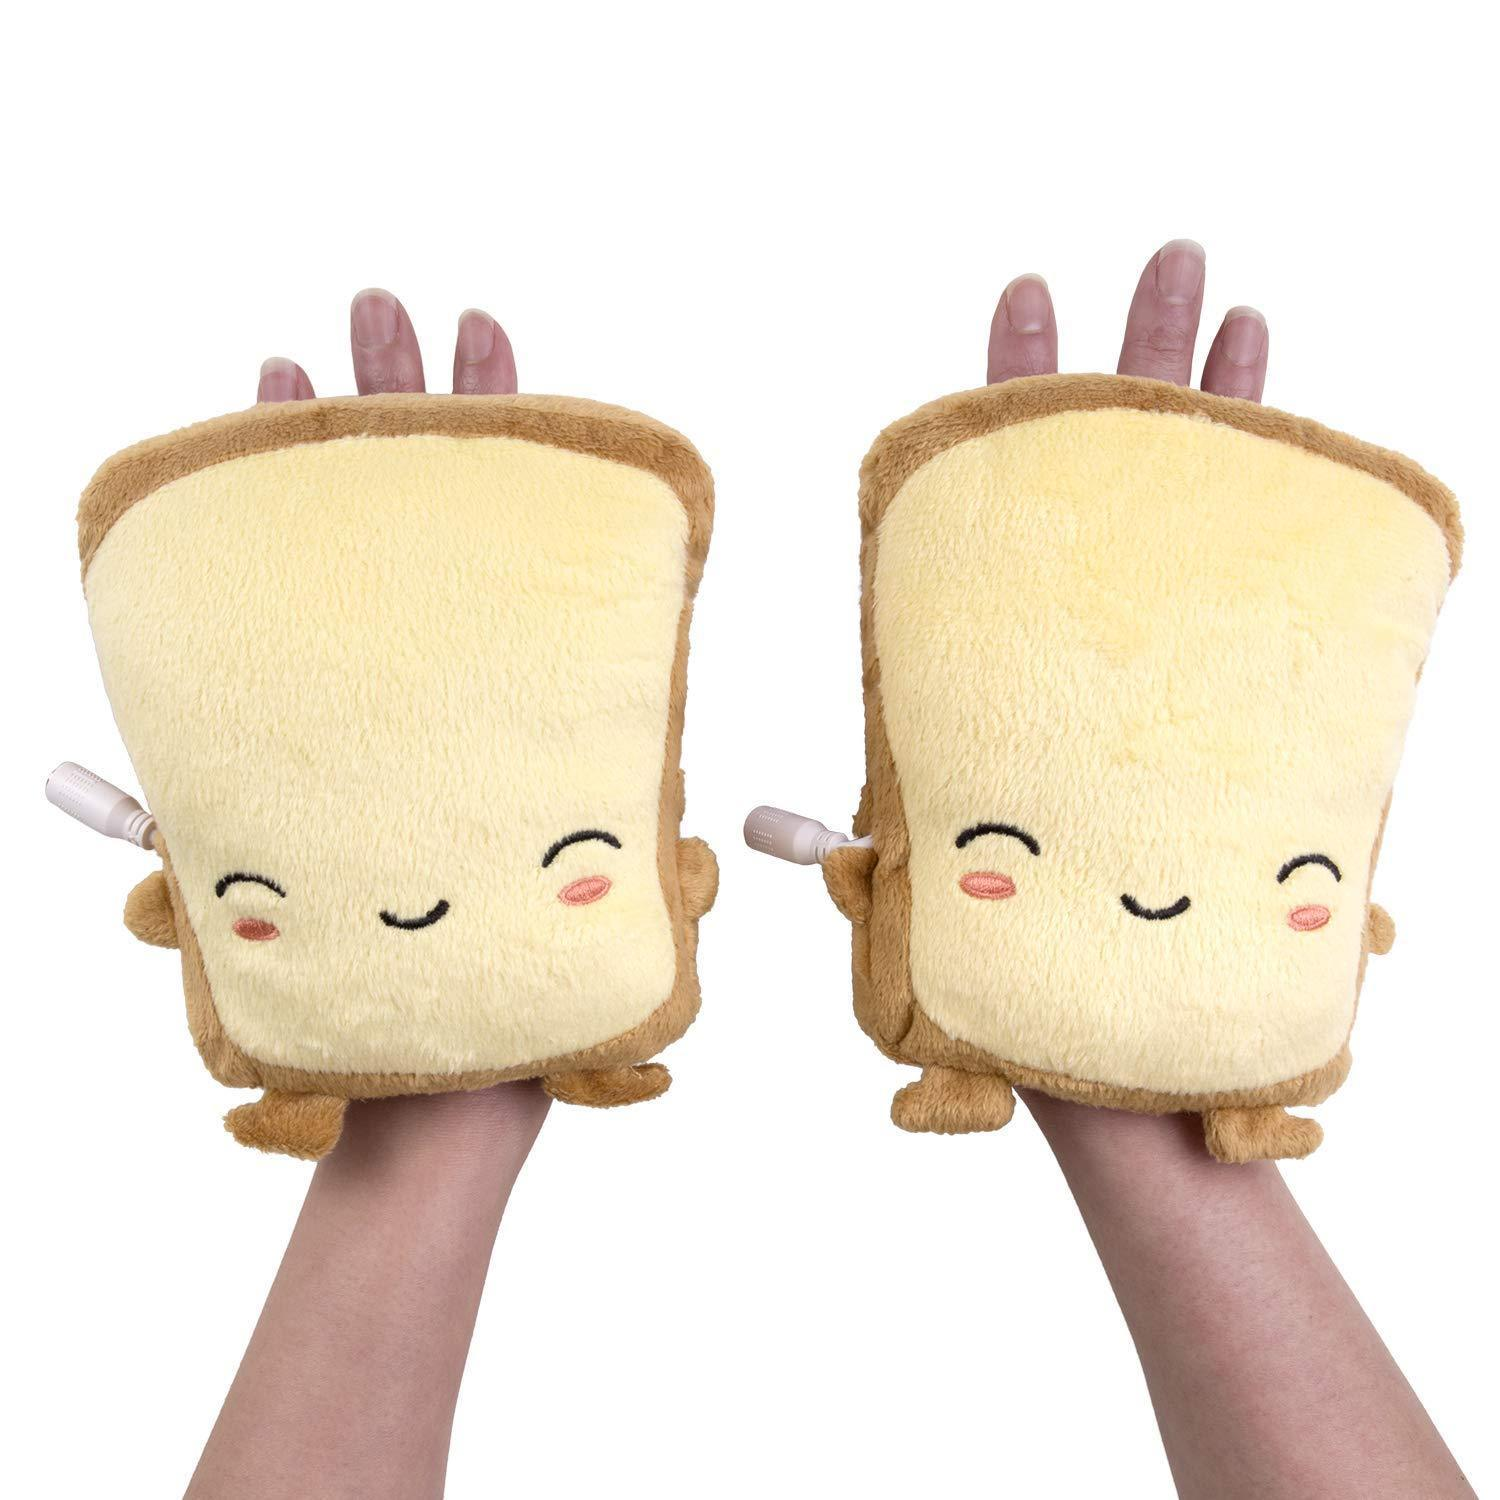 Toast Shaped USB Heated Hand Warmers